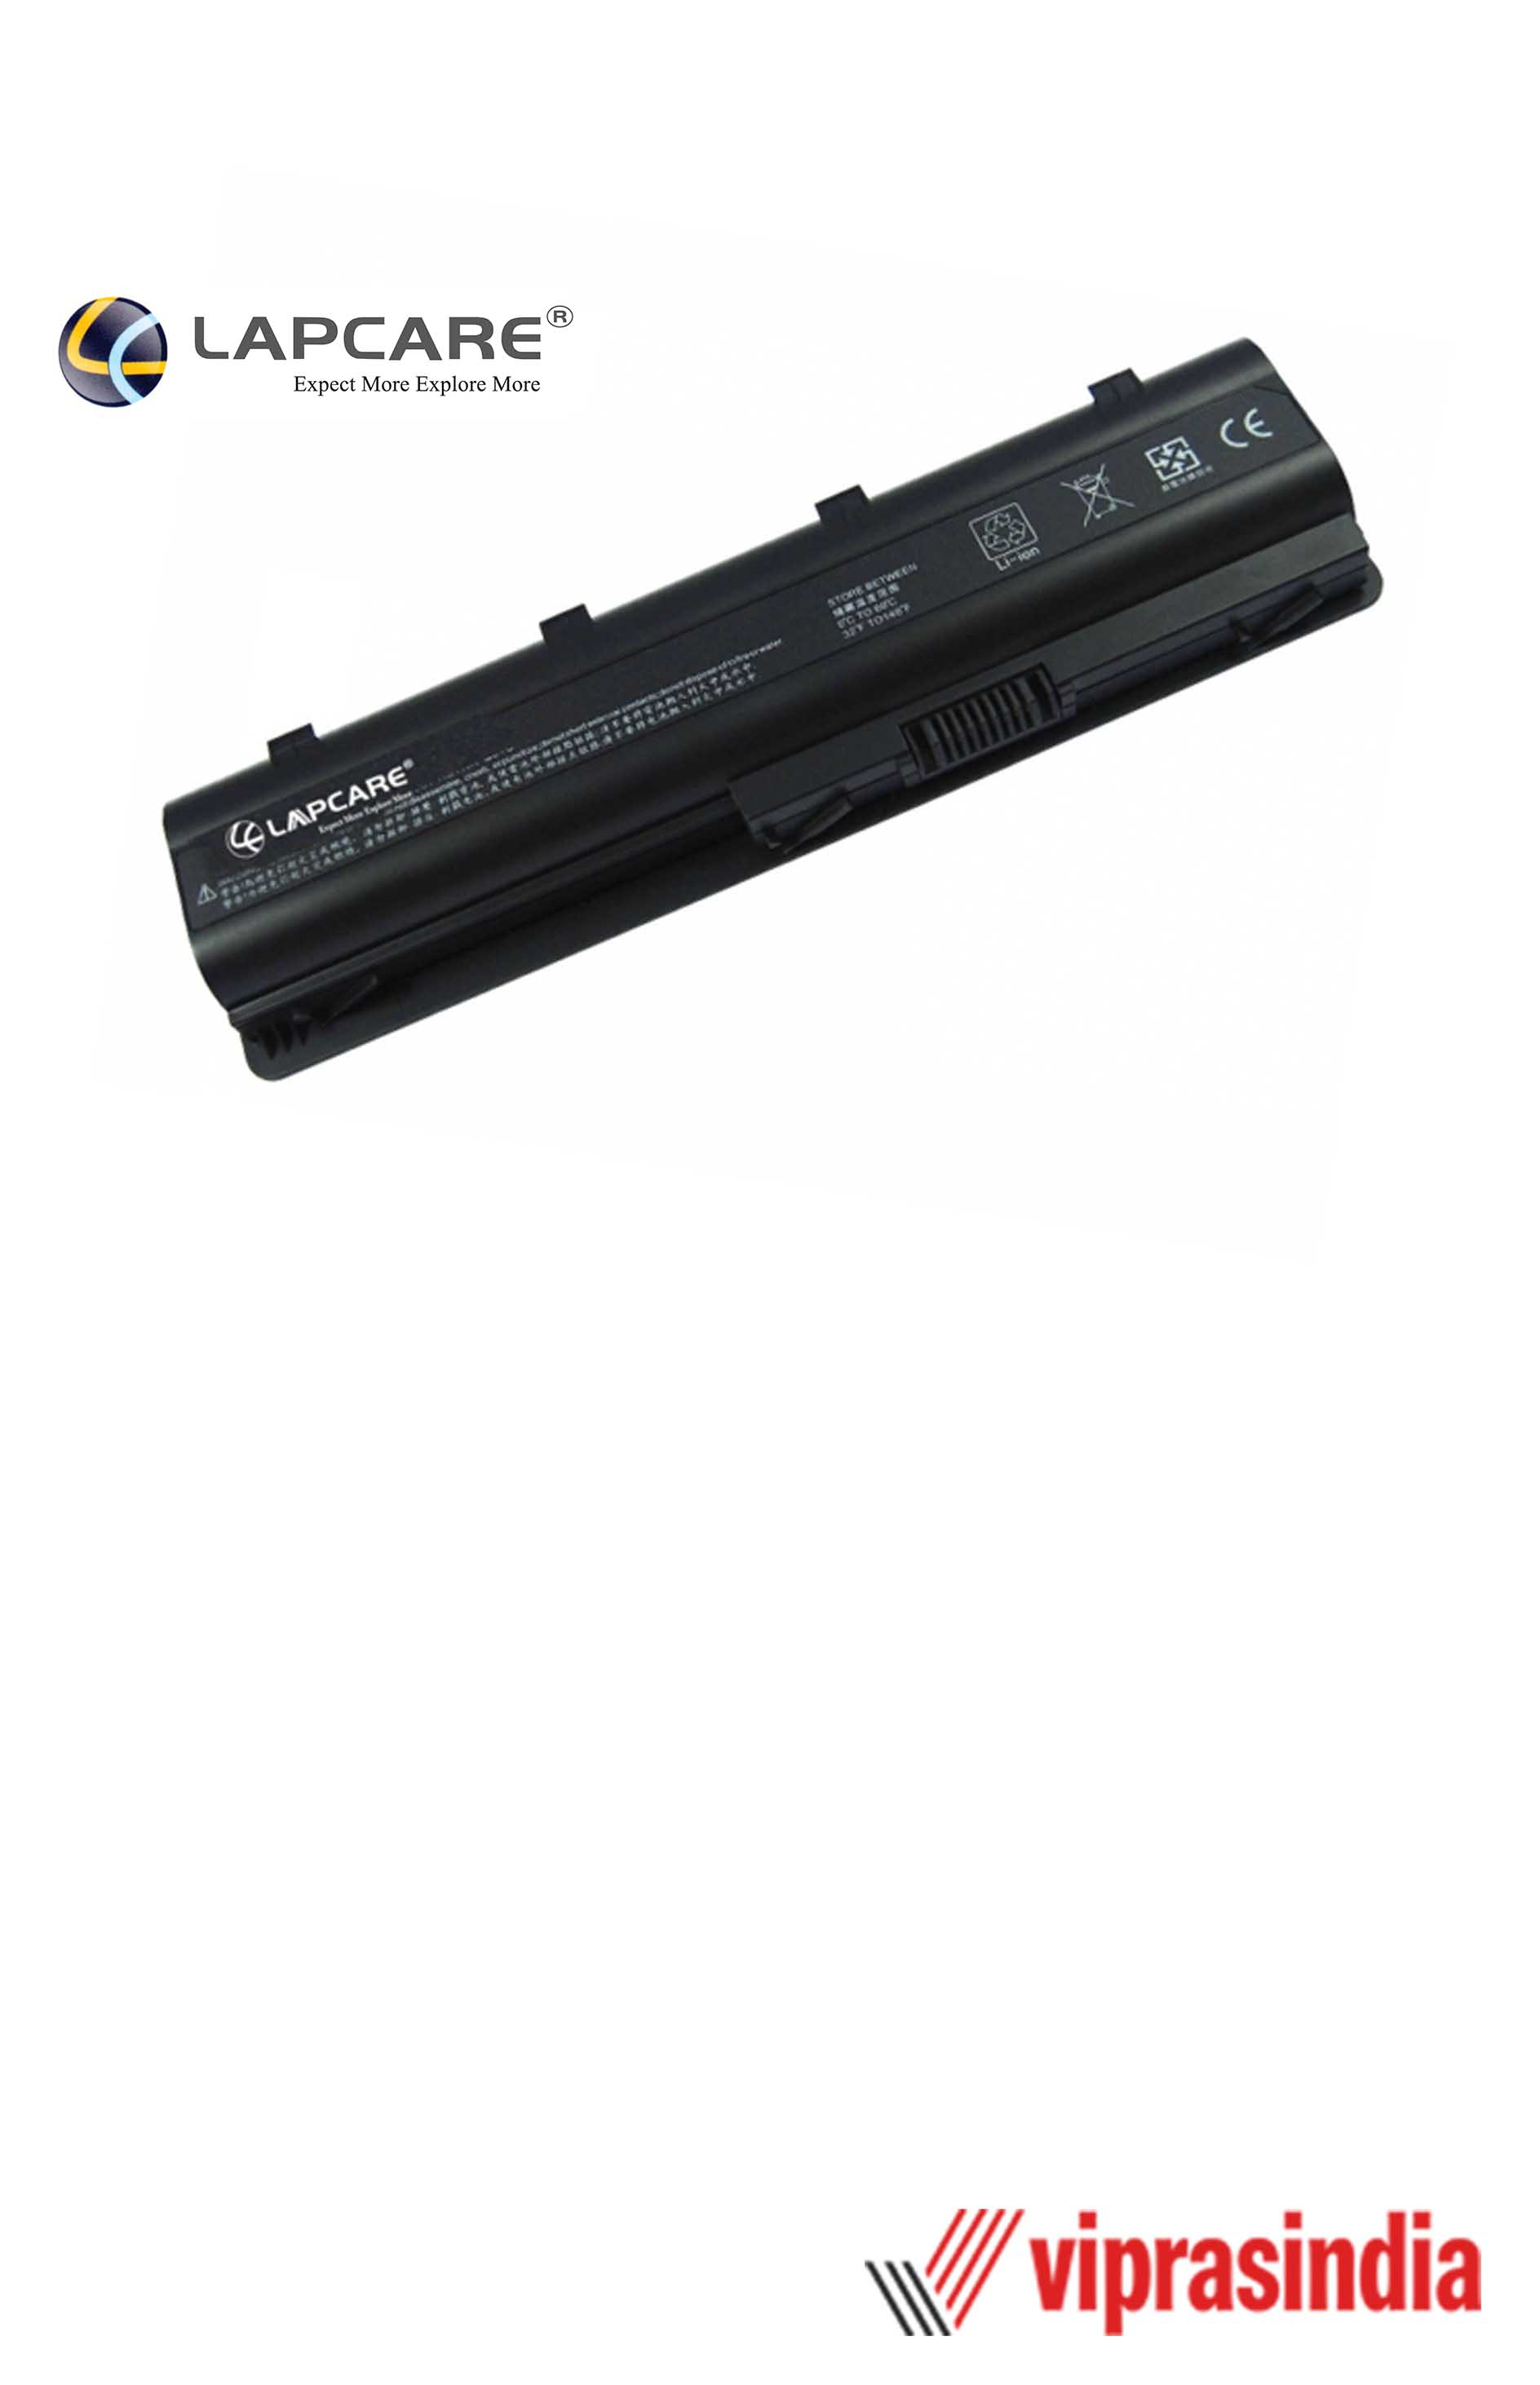 Laptop Battery Lapcare Compatible For HP CQ42